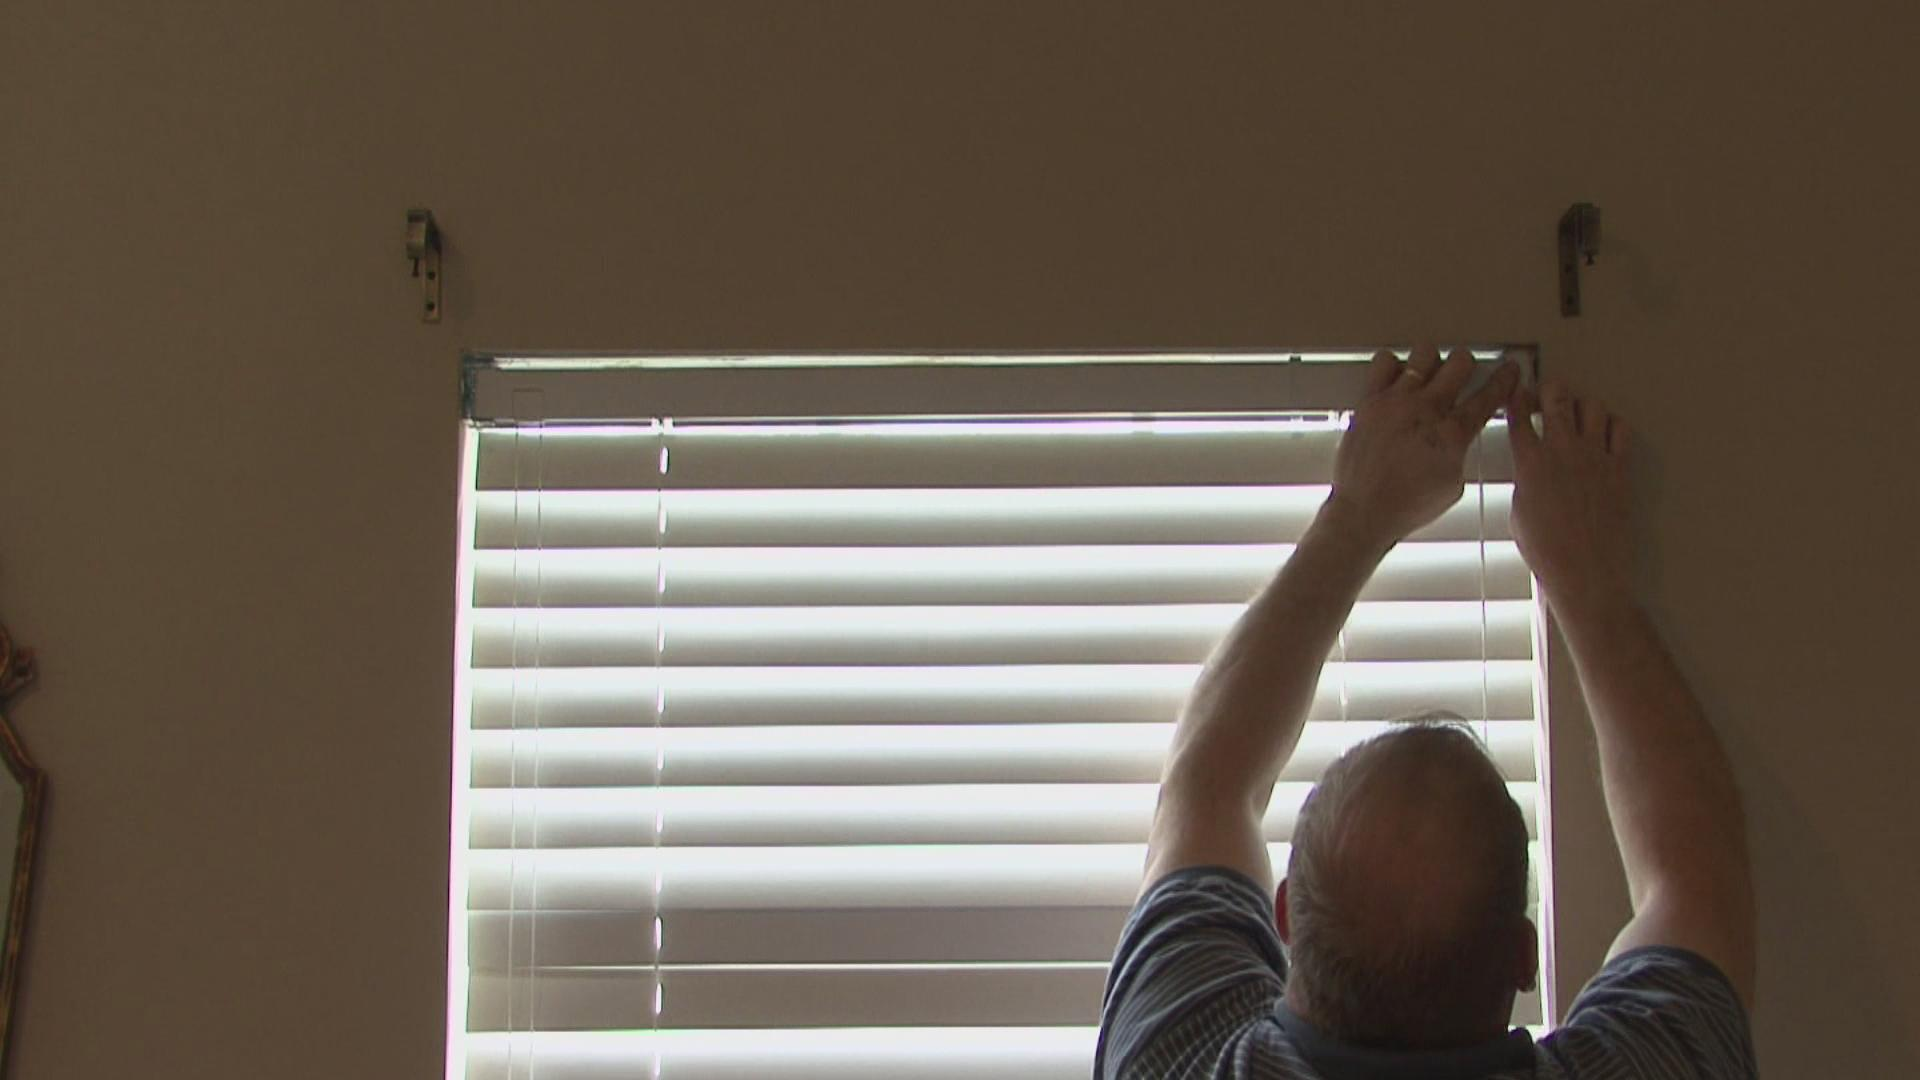 Replacement Windows - Pella, Anderson, Marvin? The what to do about blinds?-blinds.jpg